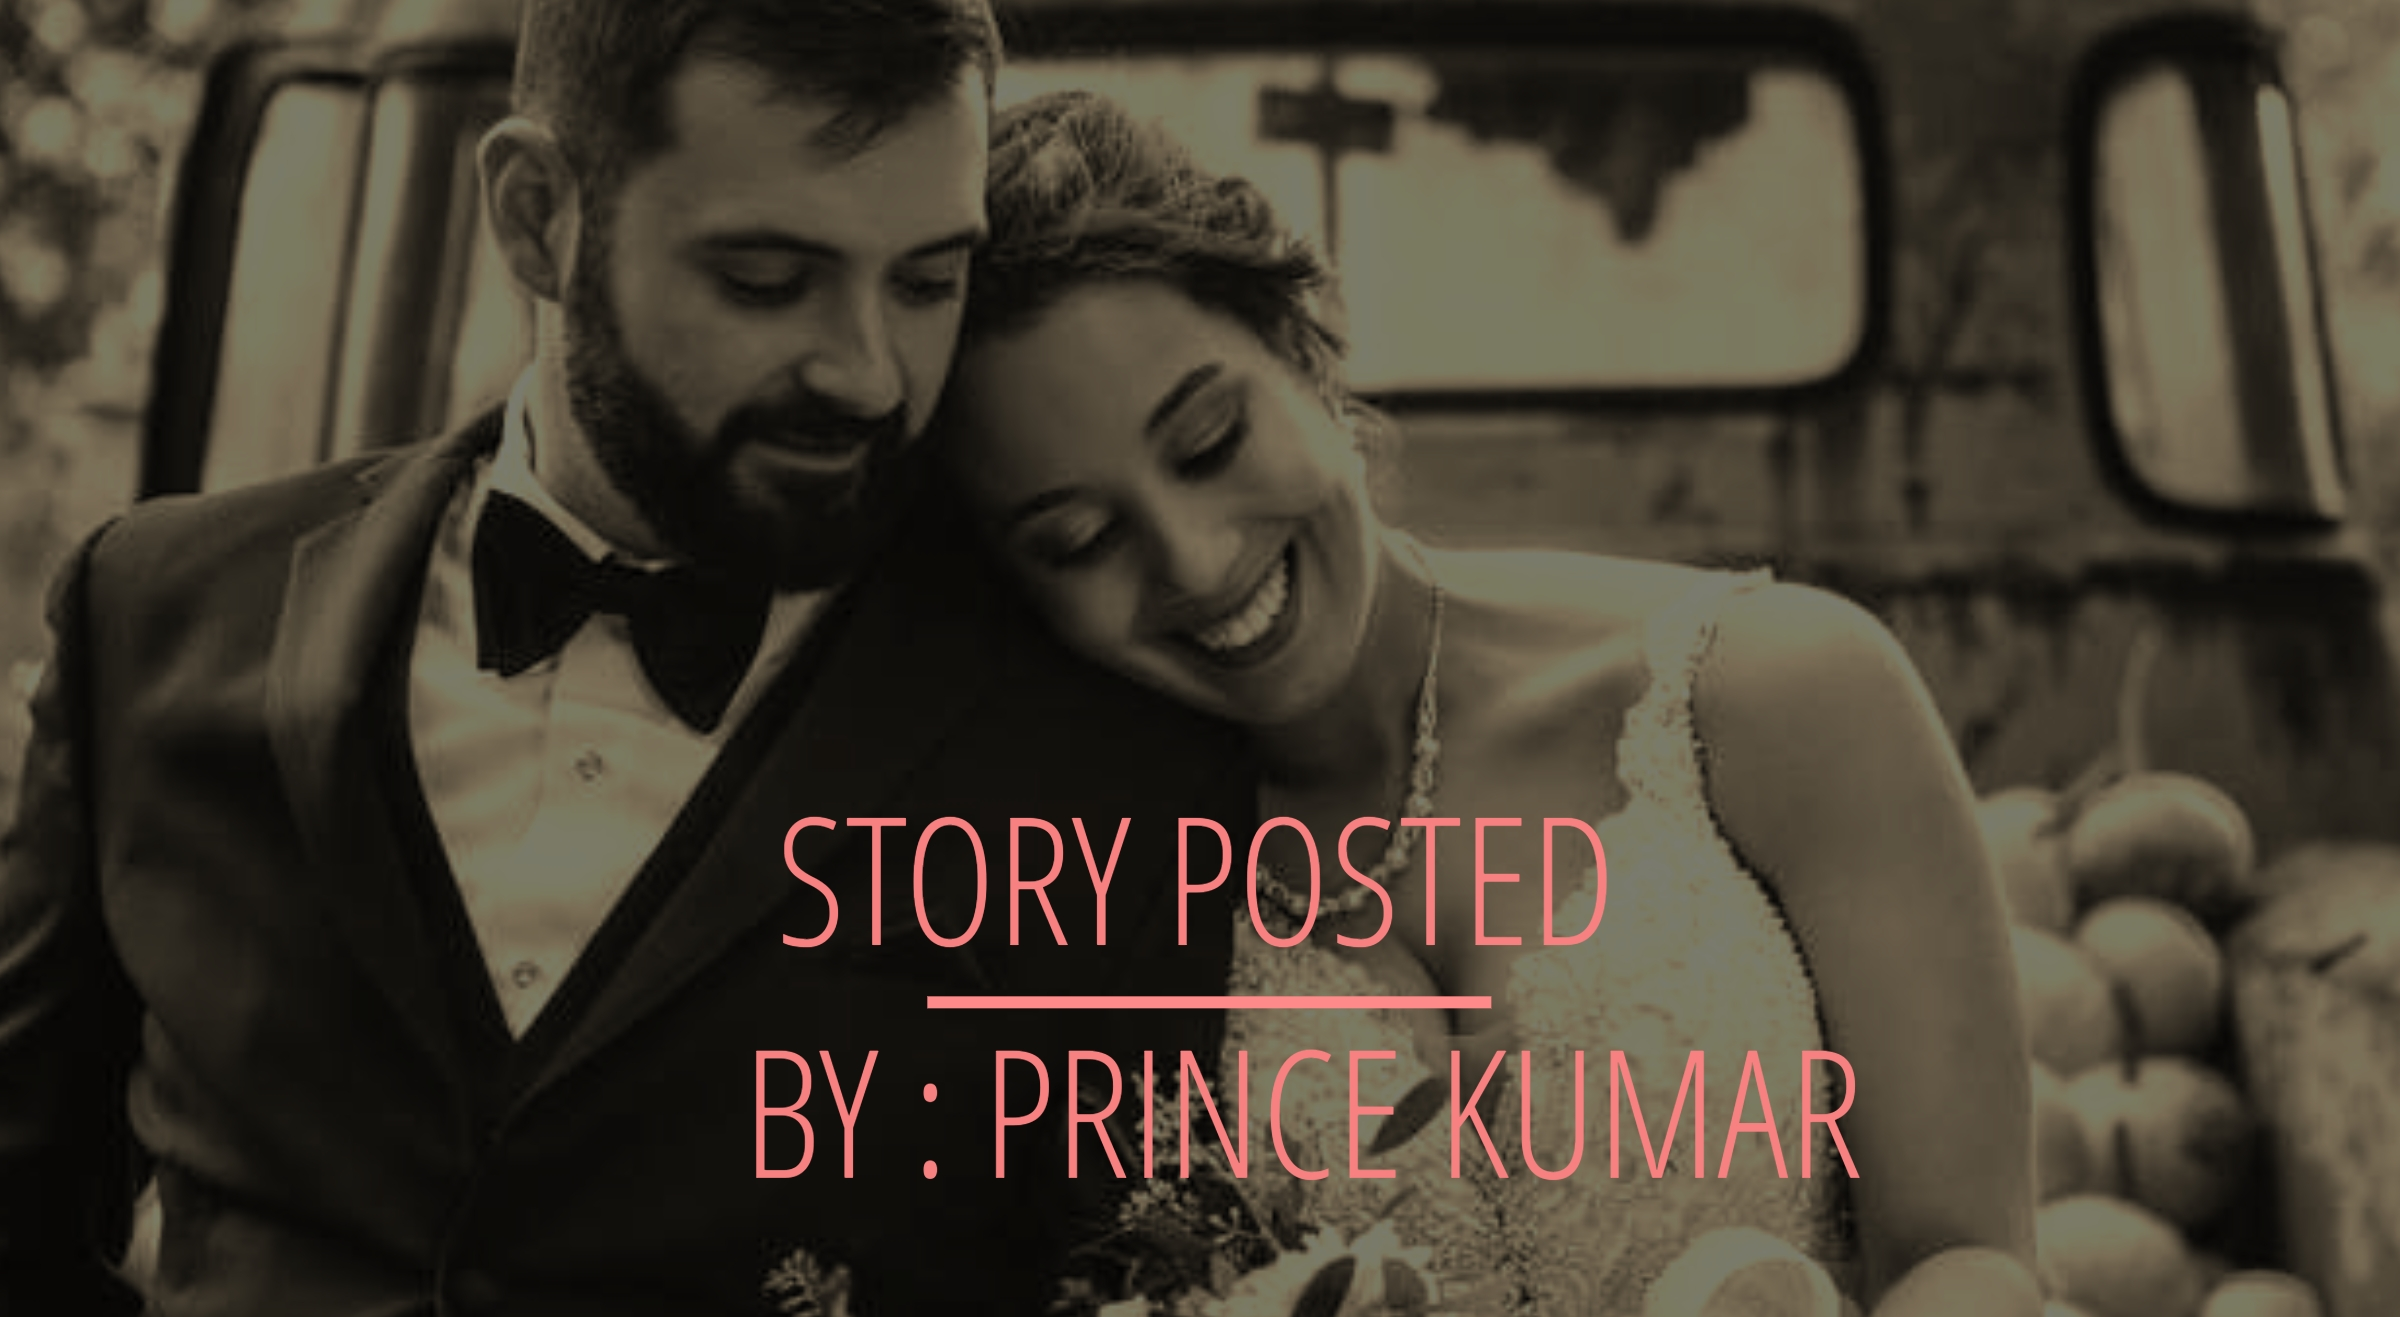 4. STORY POSTED BY PRINCE KUMAR